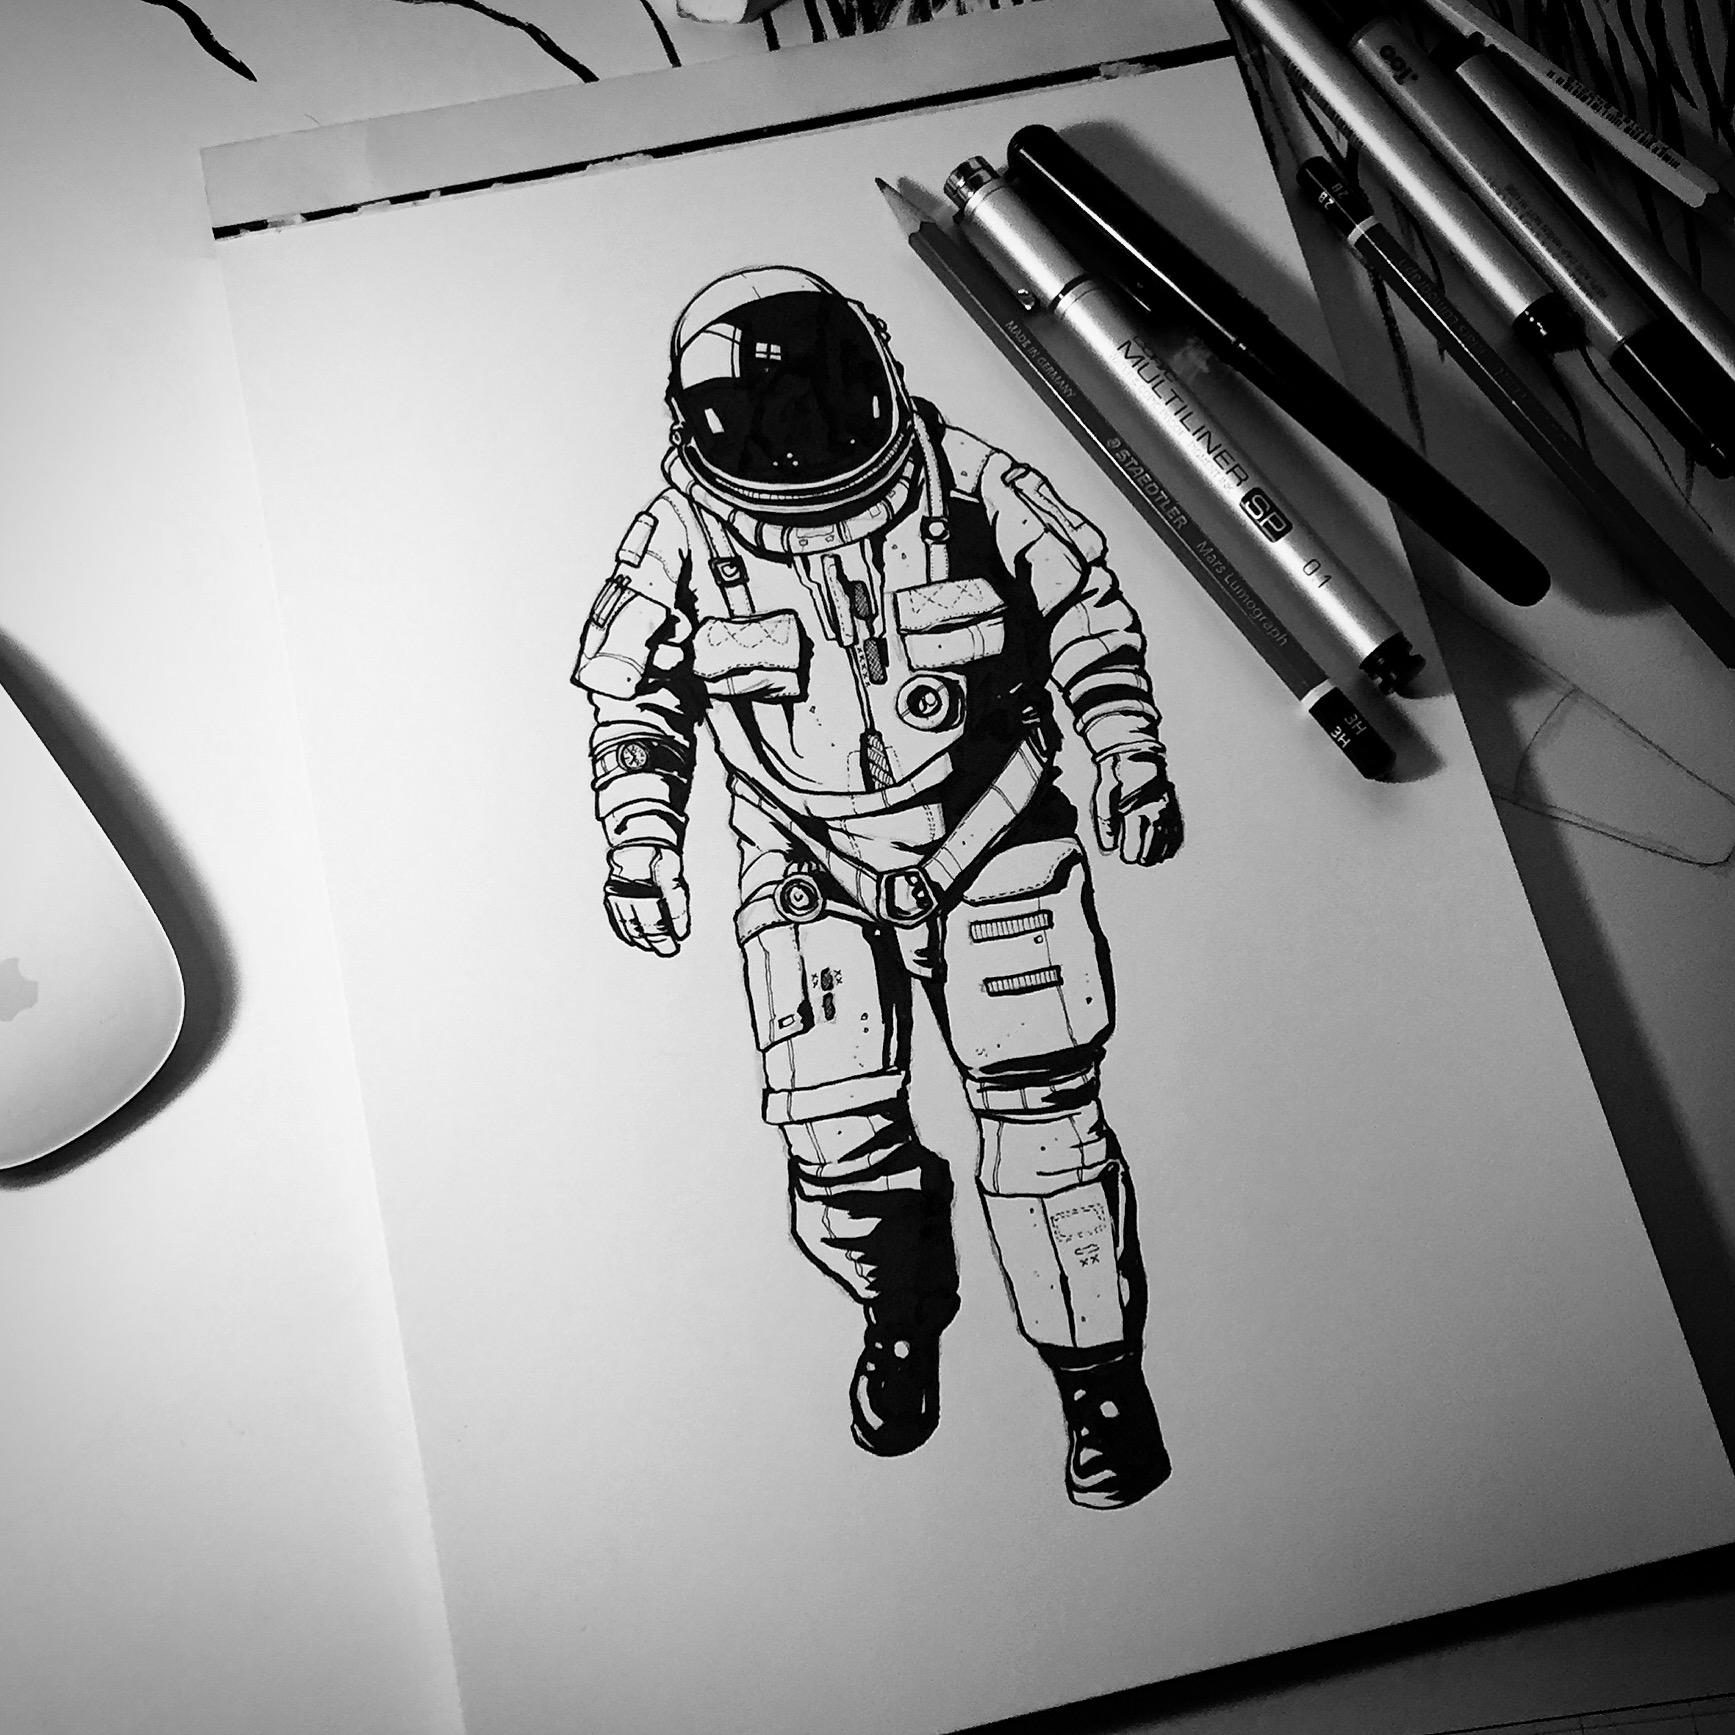 It's just an image of Mesmerizing Space Art Drawing